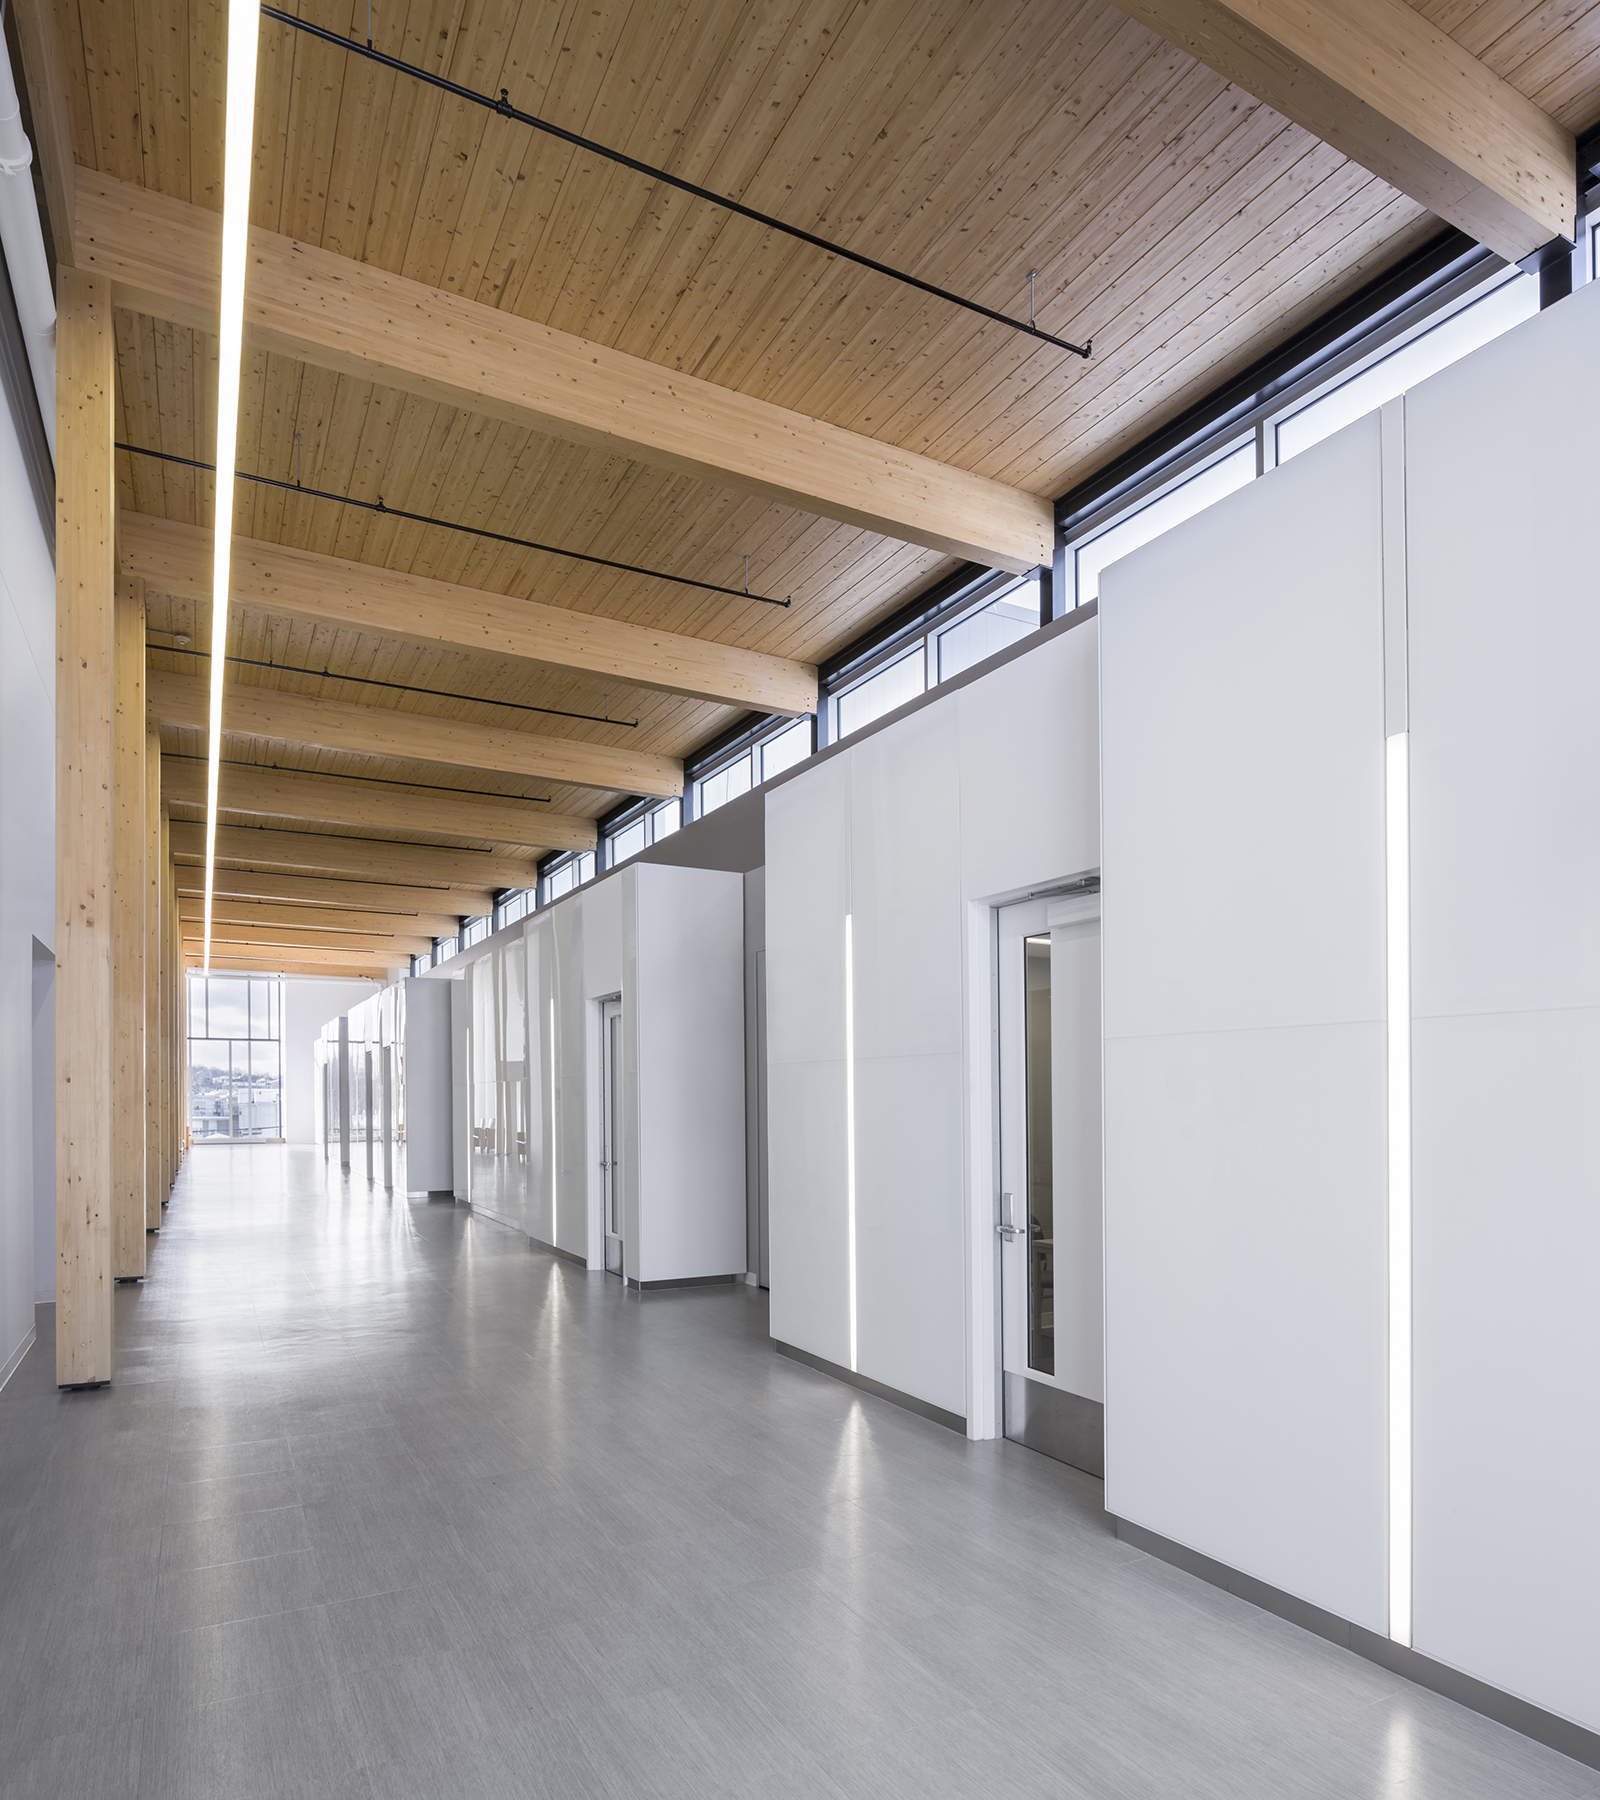 PalaisdejusticedeMontmagny Cecobois 6